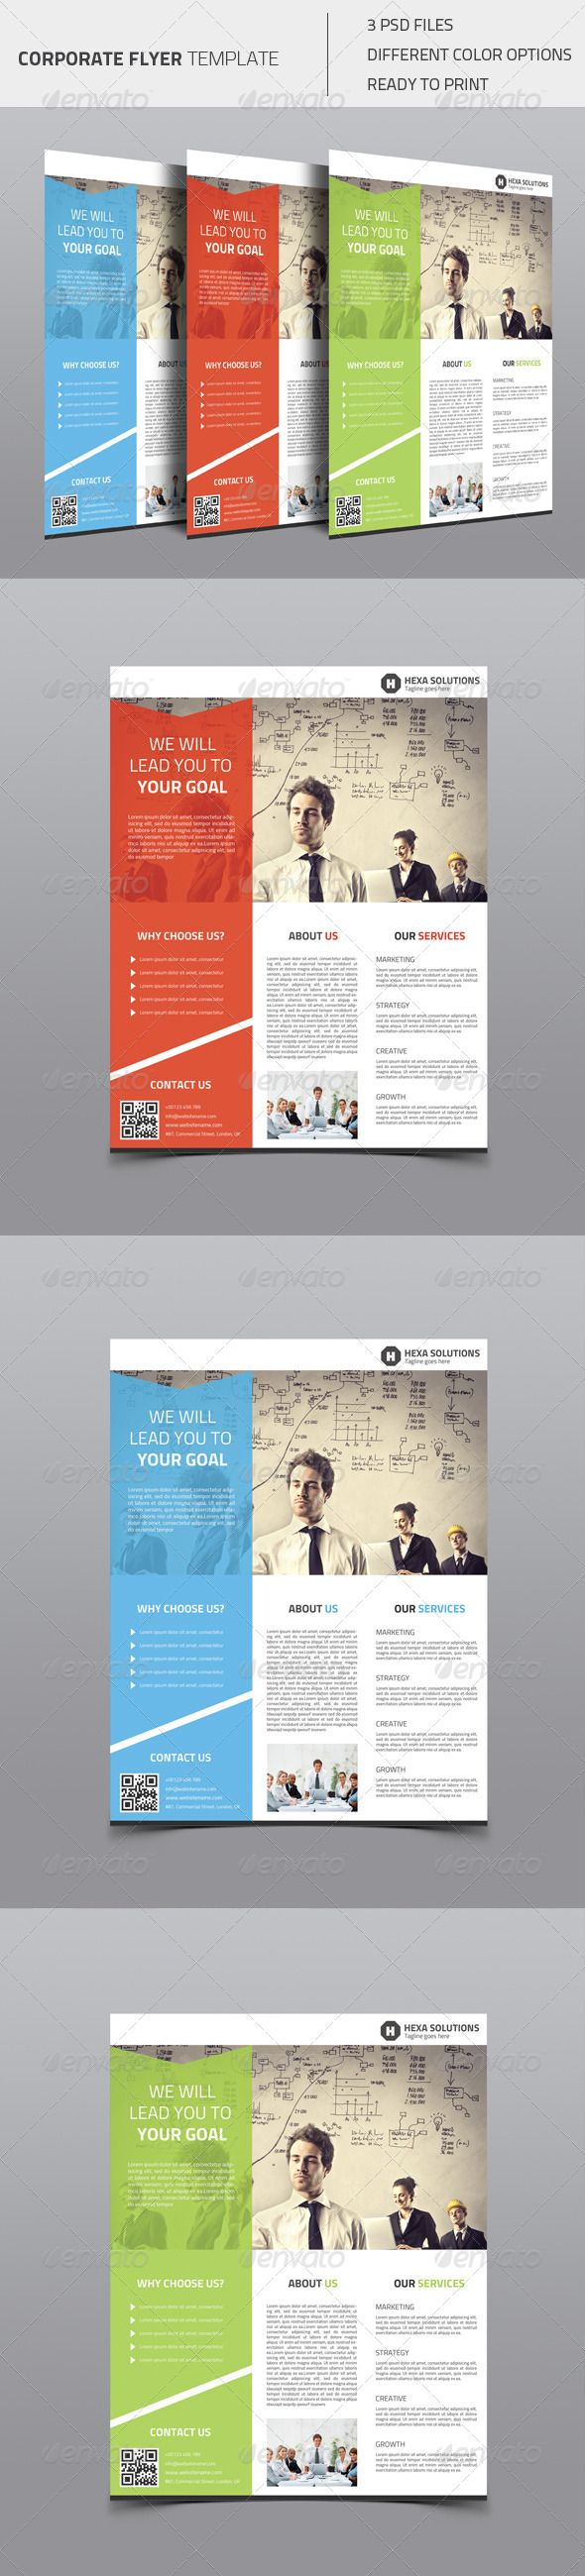 Corporate Flyer Template PSD | Buy and Download: http://graphicriver.net/item/corporate-flyer-02/8470368?WT.ac=category_thumb&WT.z_author=kawarsawhney&ref=ksioks